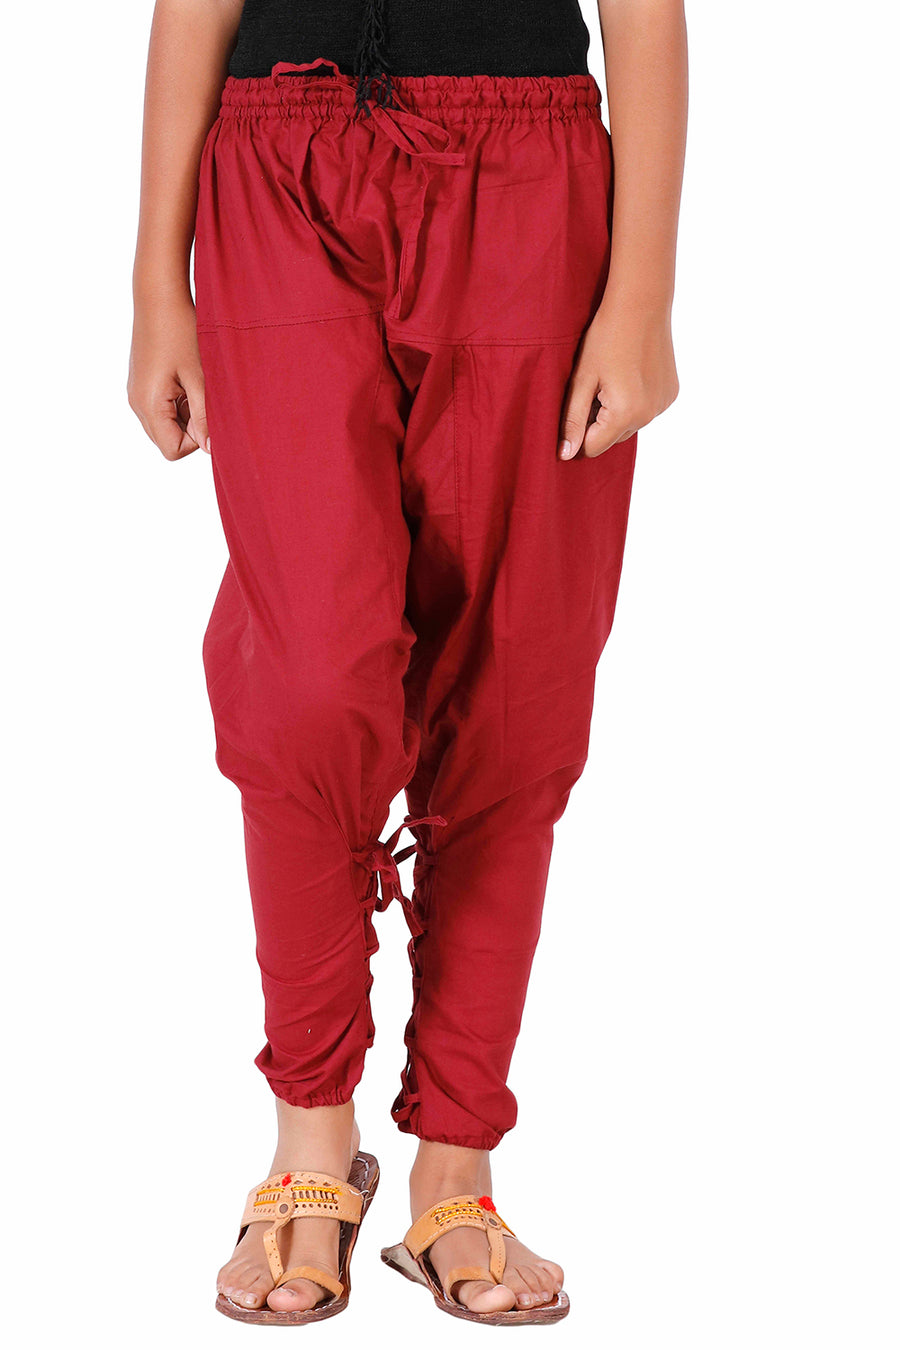 Kids Harem Pants, Kids Parachute Pants, red Harem Pants for kids, mc hammer pants for kids, slouch pants kids, cotton harem pants kids, kids harem sweatpants,kids drop crotch pants, boys harem pants, girls harem pants, harem pants for kids boys,boys pants, girls harem pants, parachute pants girls, parachute pants boys